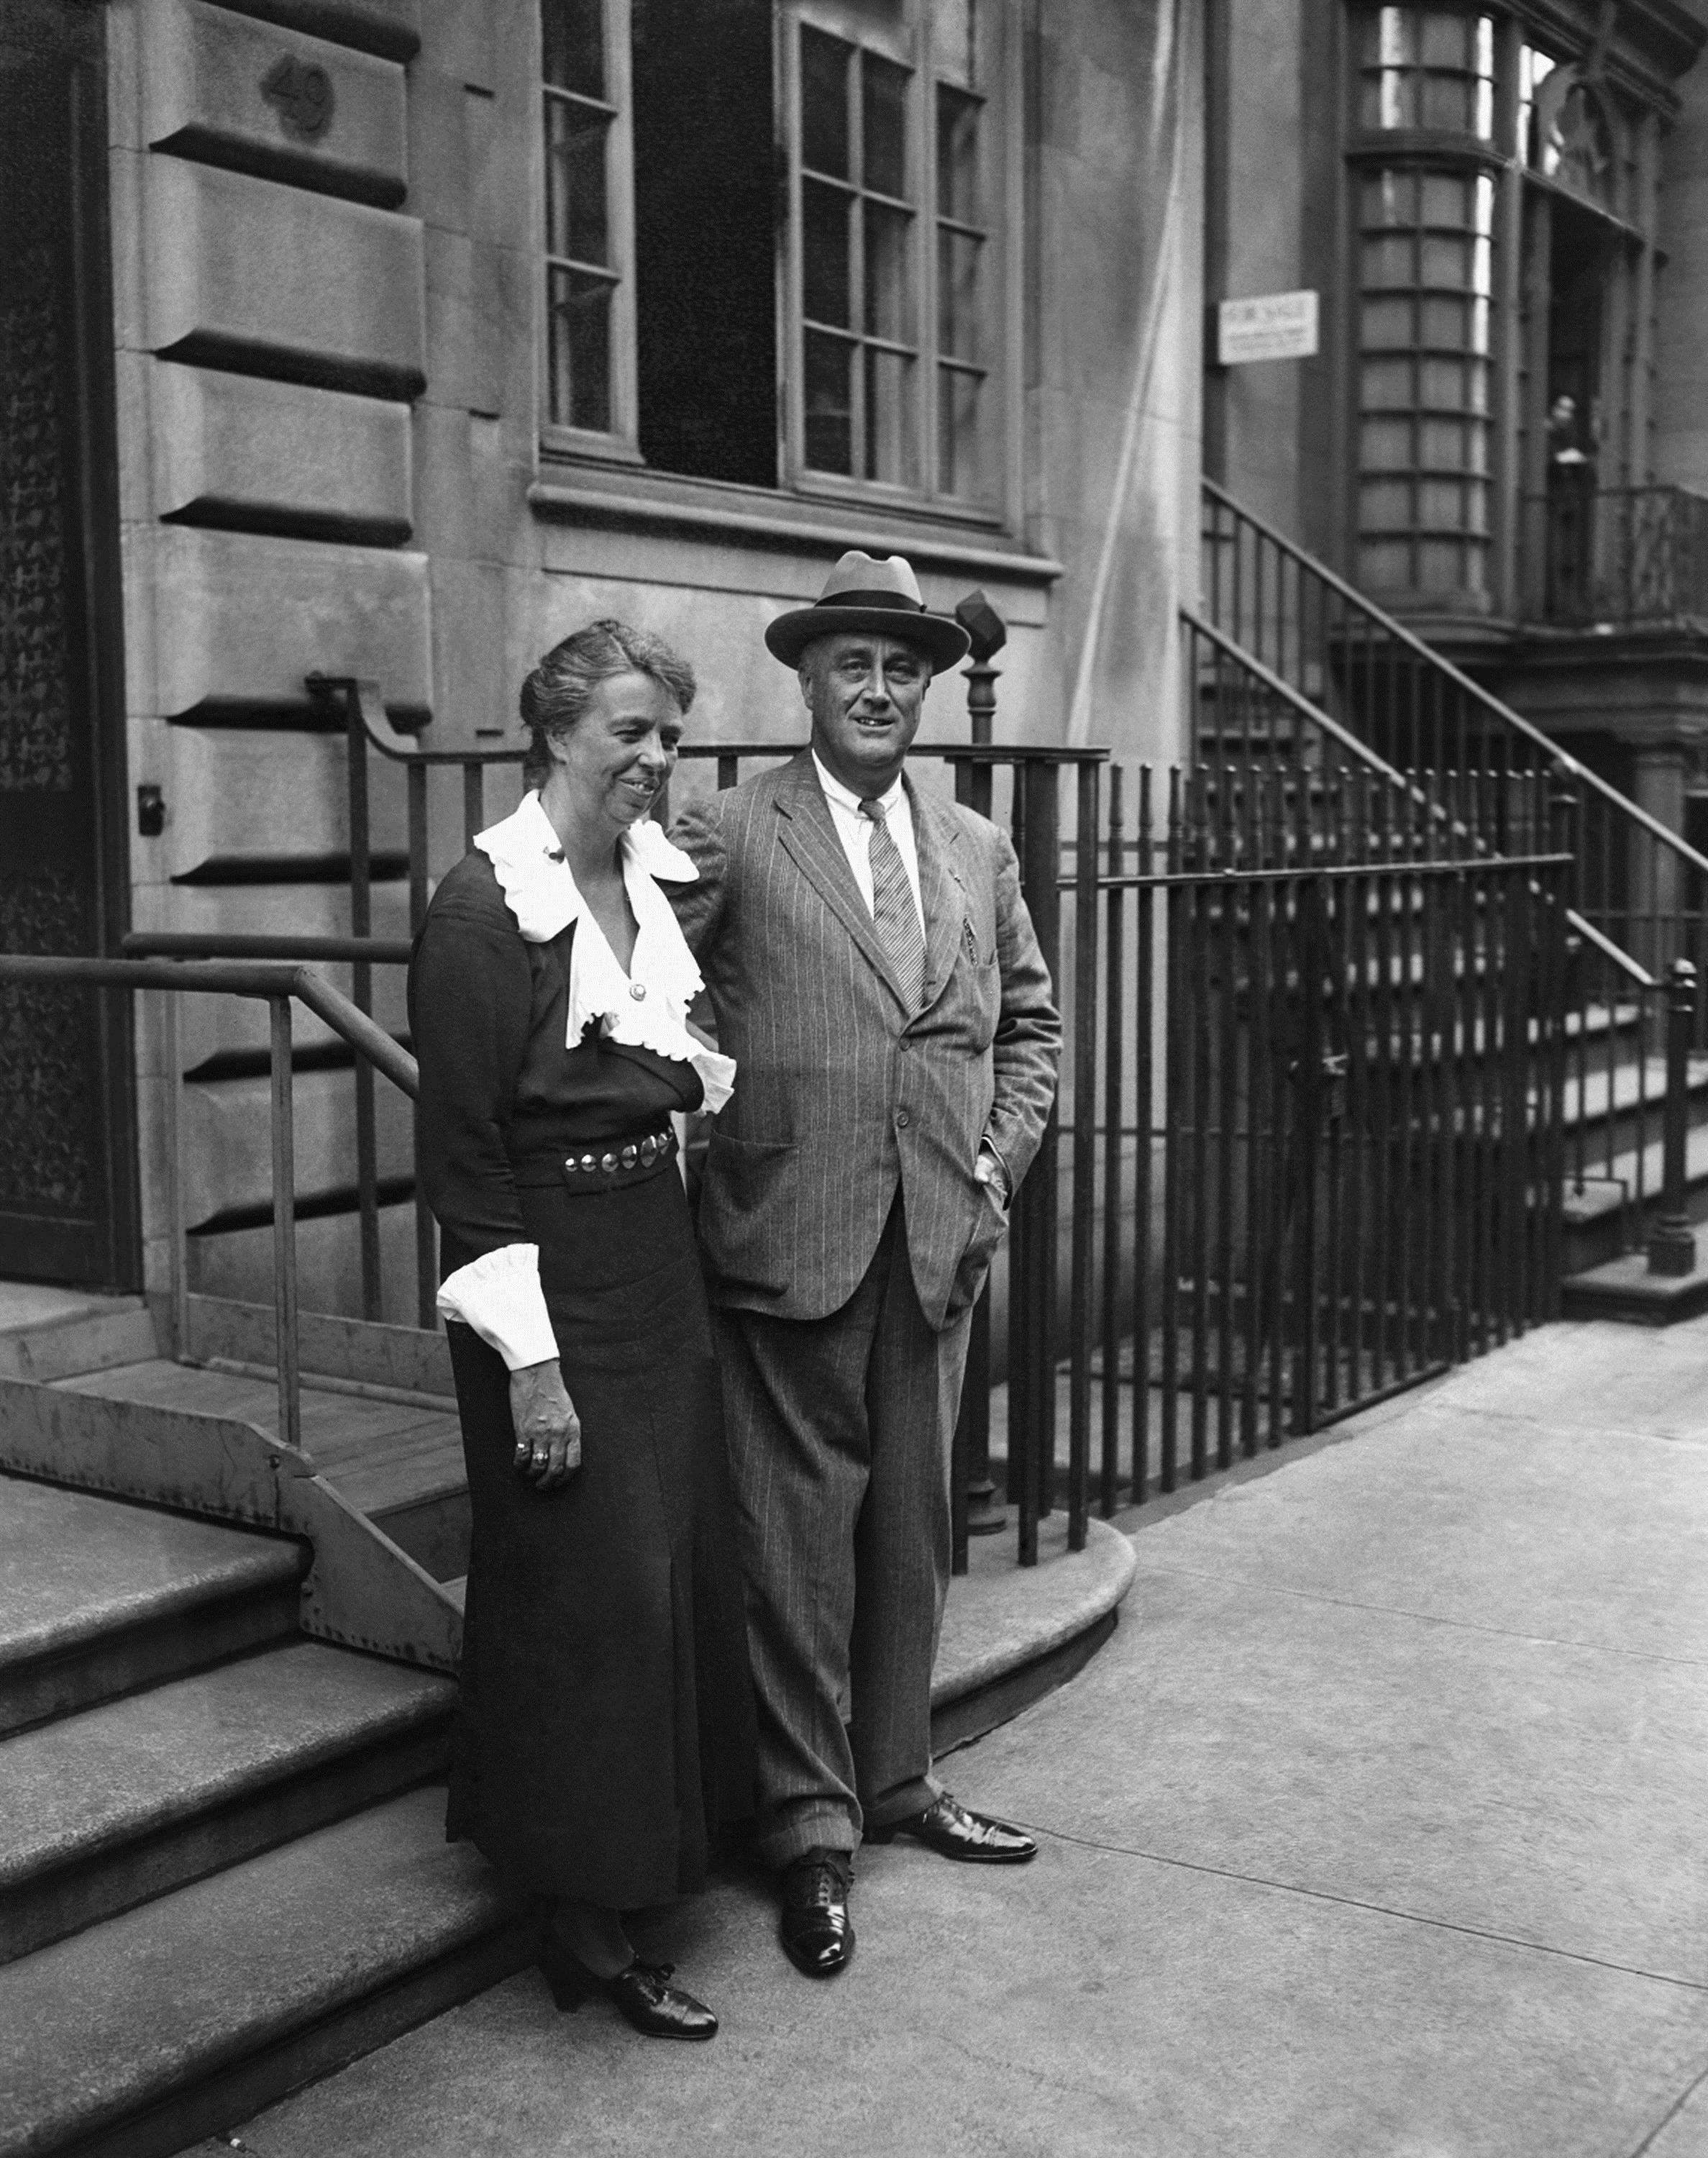 President Franklin D. Roosevelt and first lady Eleanor Roosevelt standing in front of their home located on East 65th St. in New York, 1933